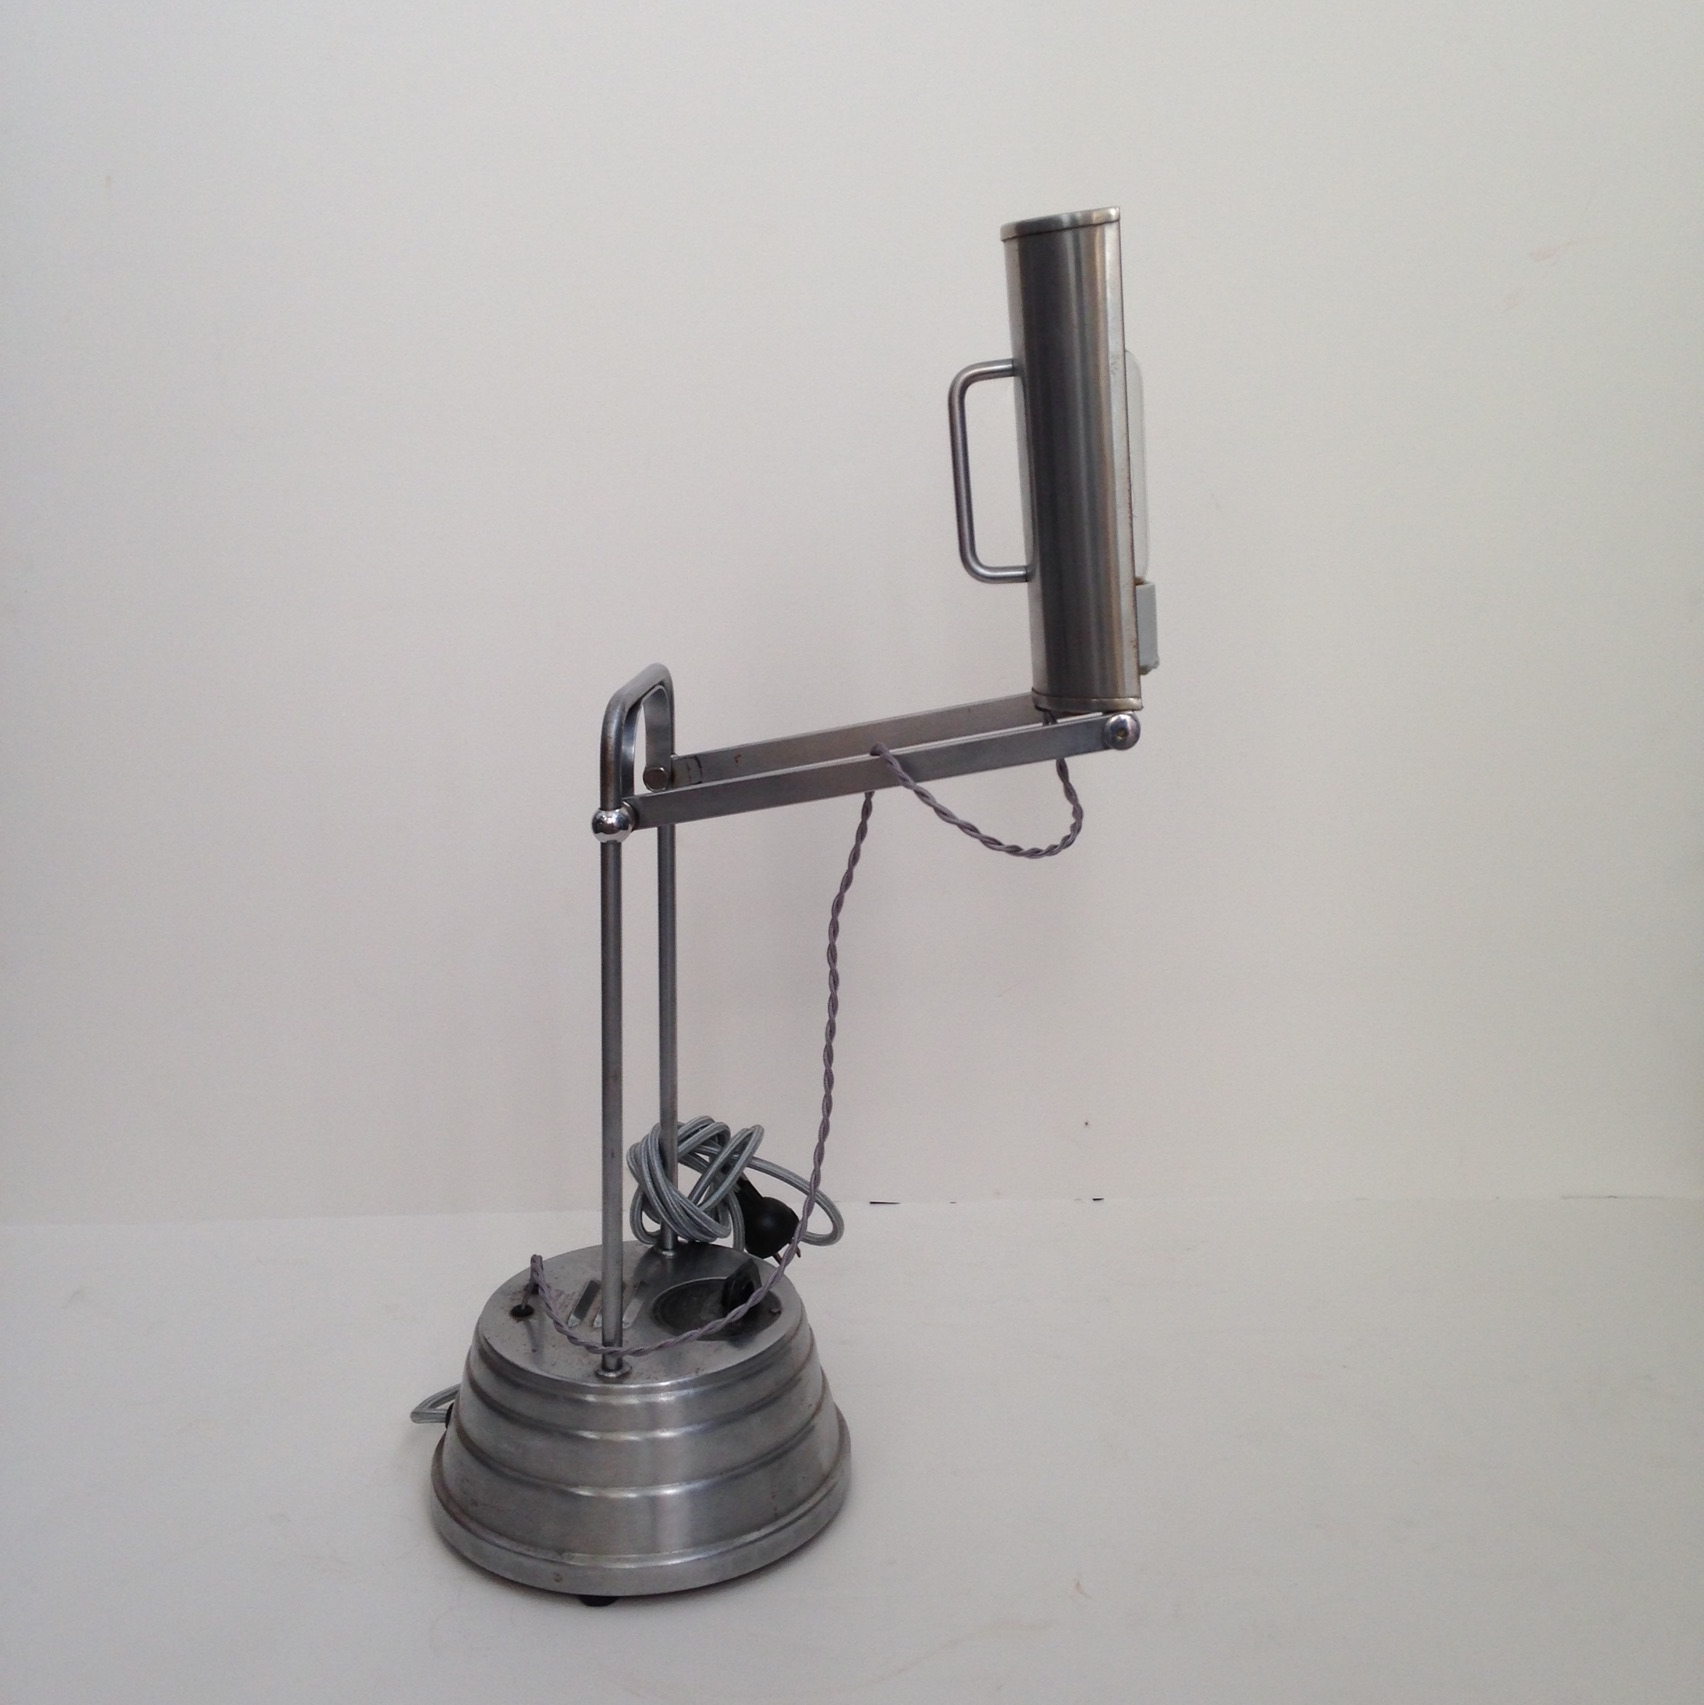 Sun Kraft Vintage 1940 Industrial Desk Lamp Chairish